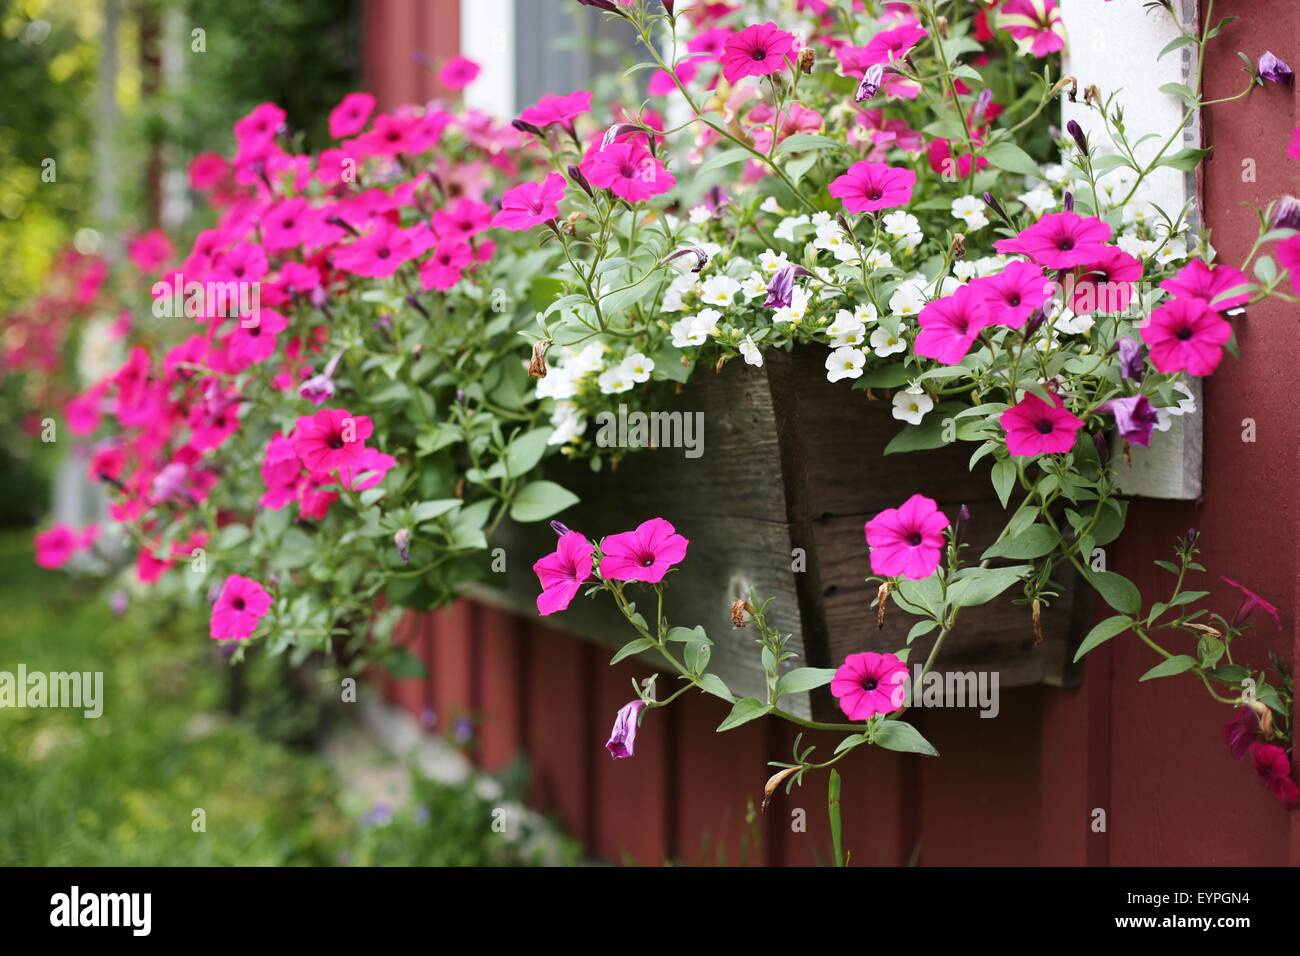 Pink petunias growing in a window box on a house. - Stock Image